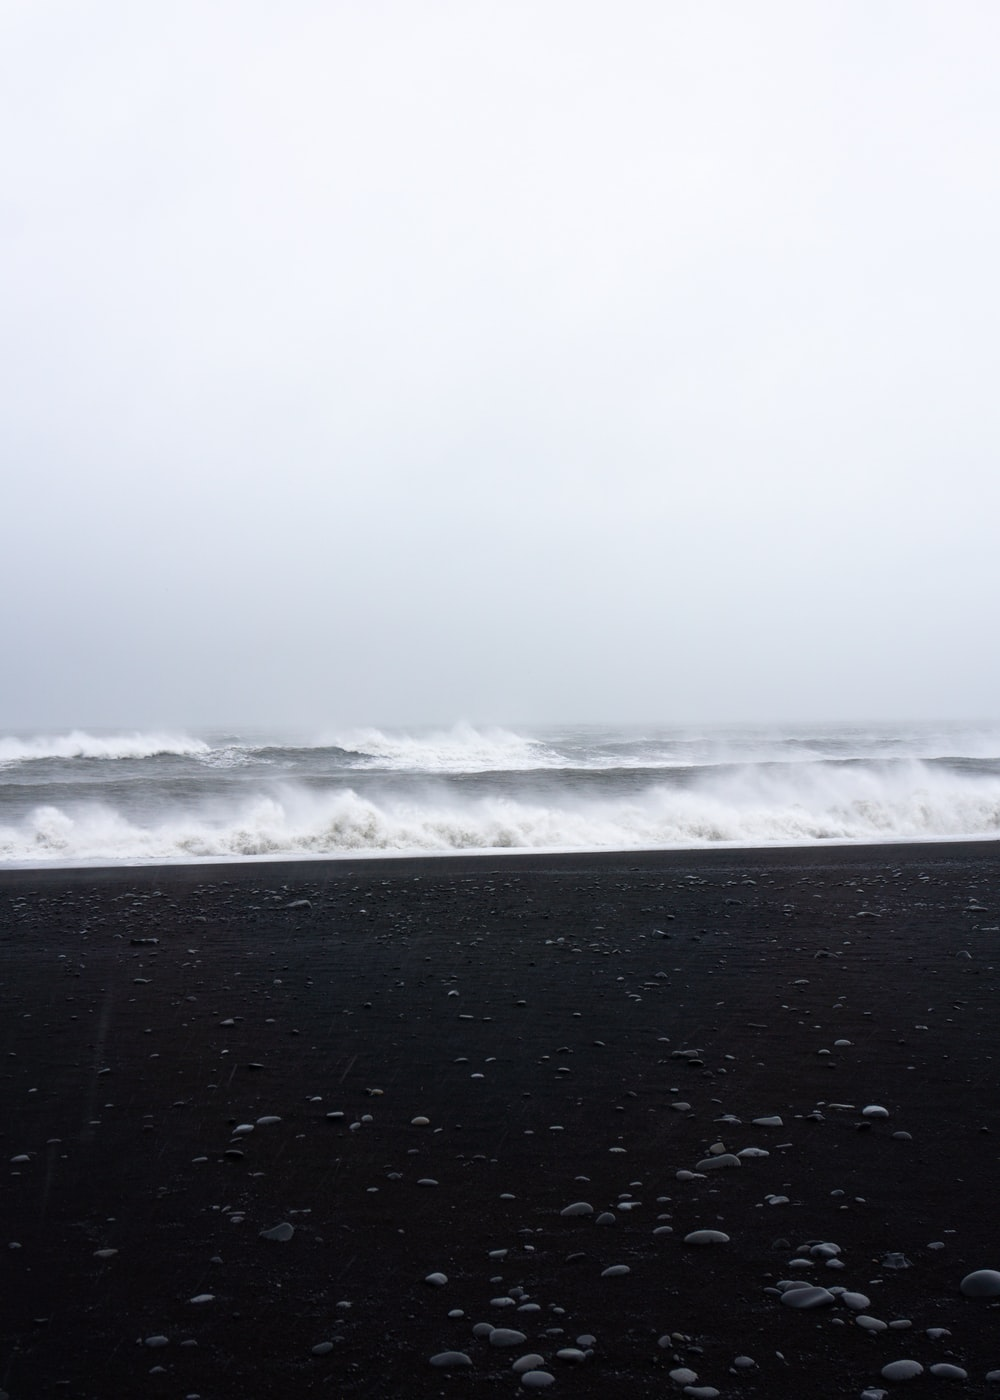 black sand and ocean waves under fogs